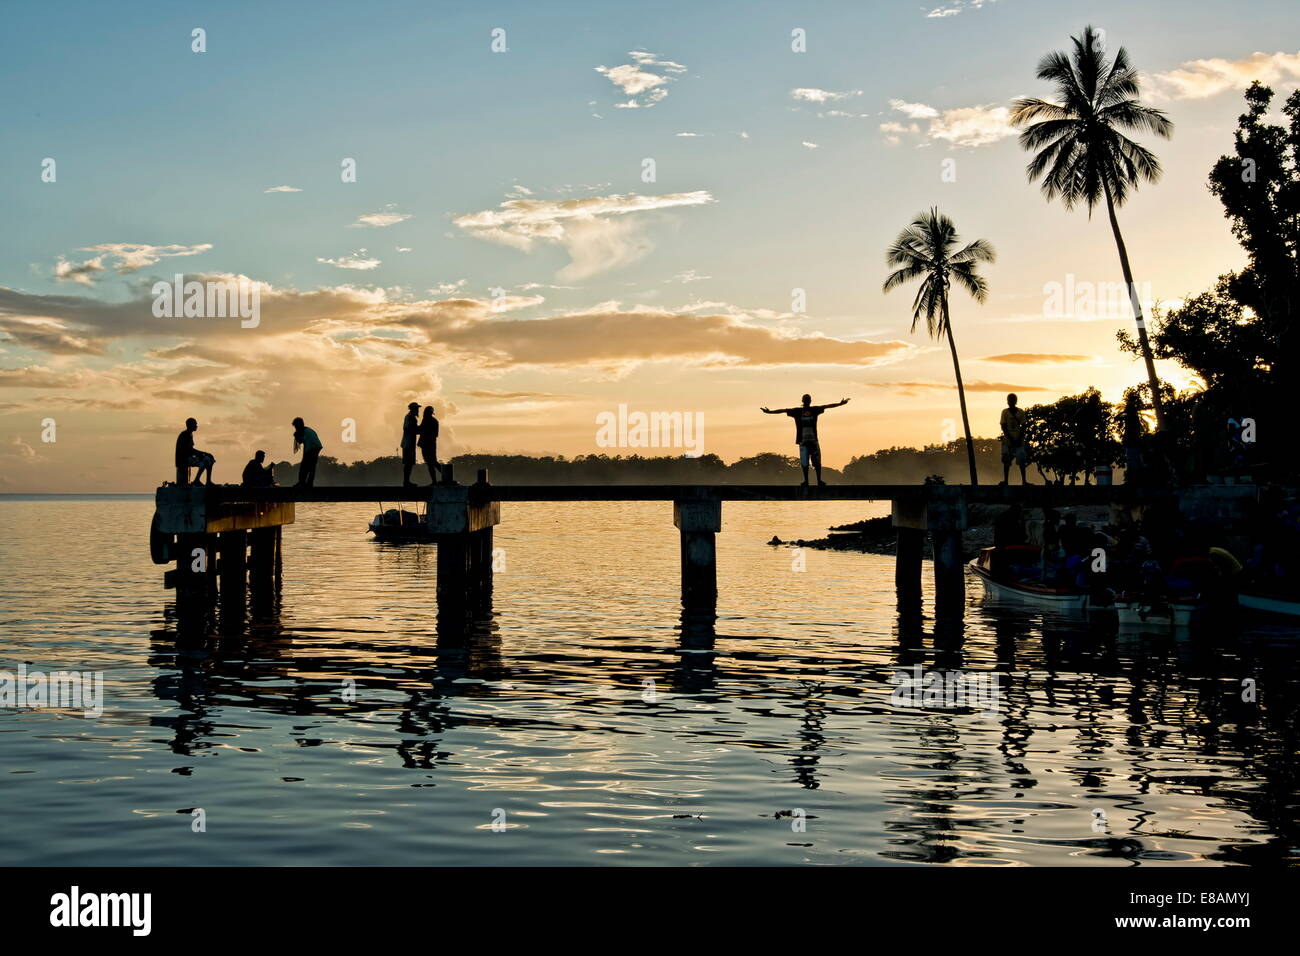 People on jetty, Roviana Lagoon, Munda, New Britain, Solomon Islands - Stock Image